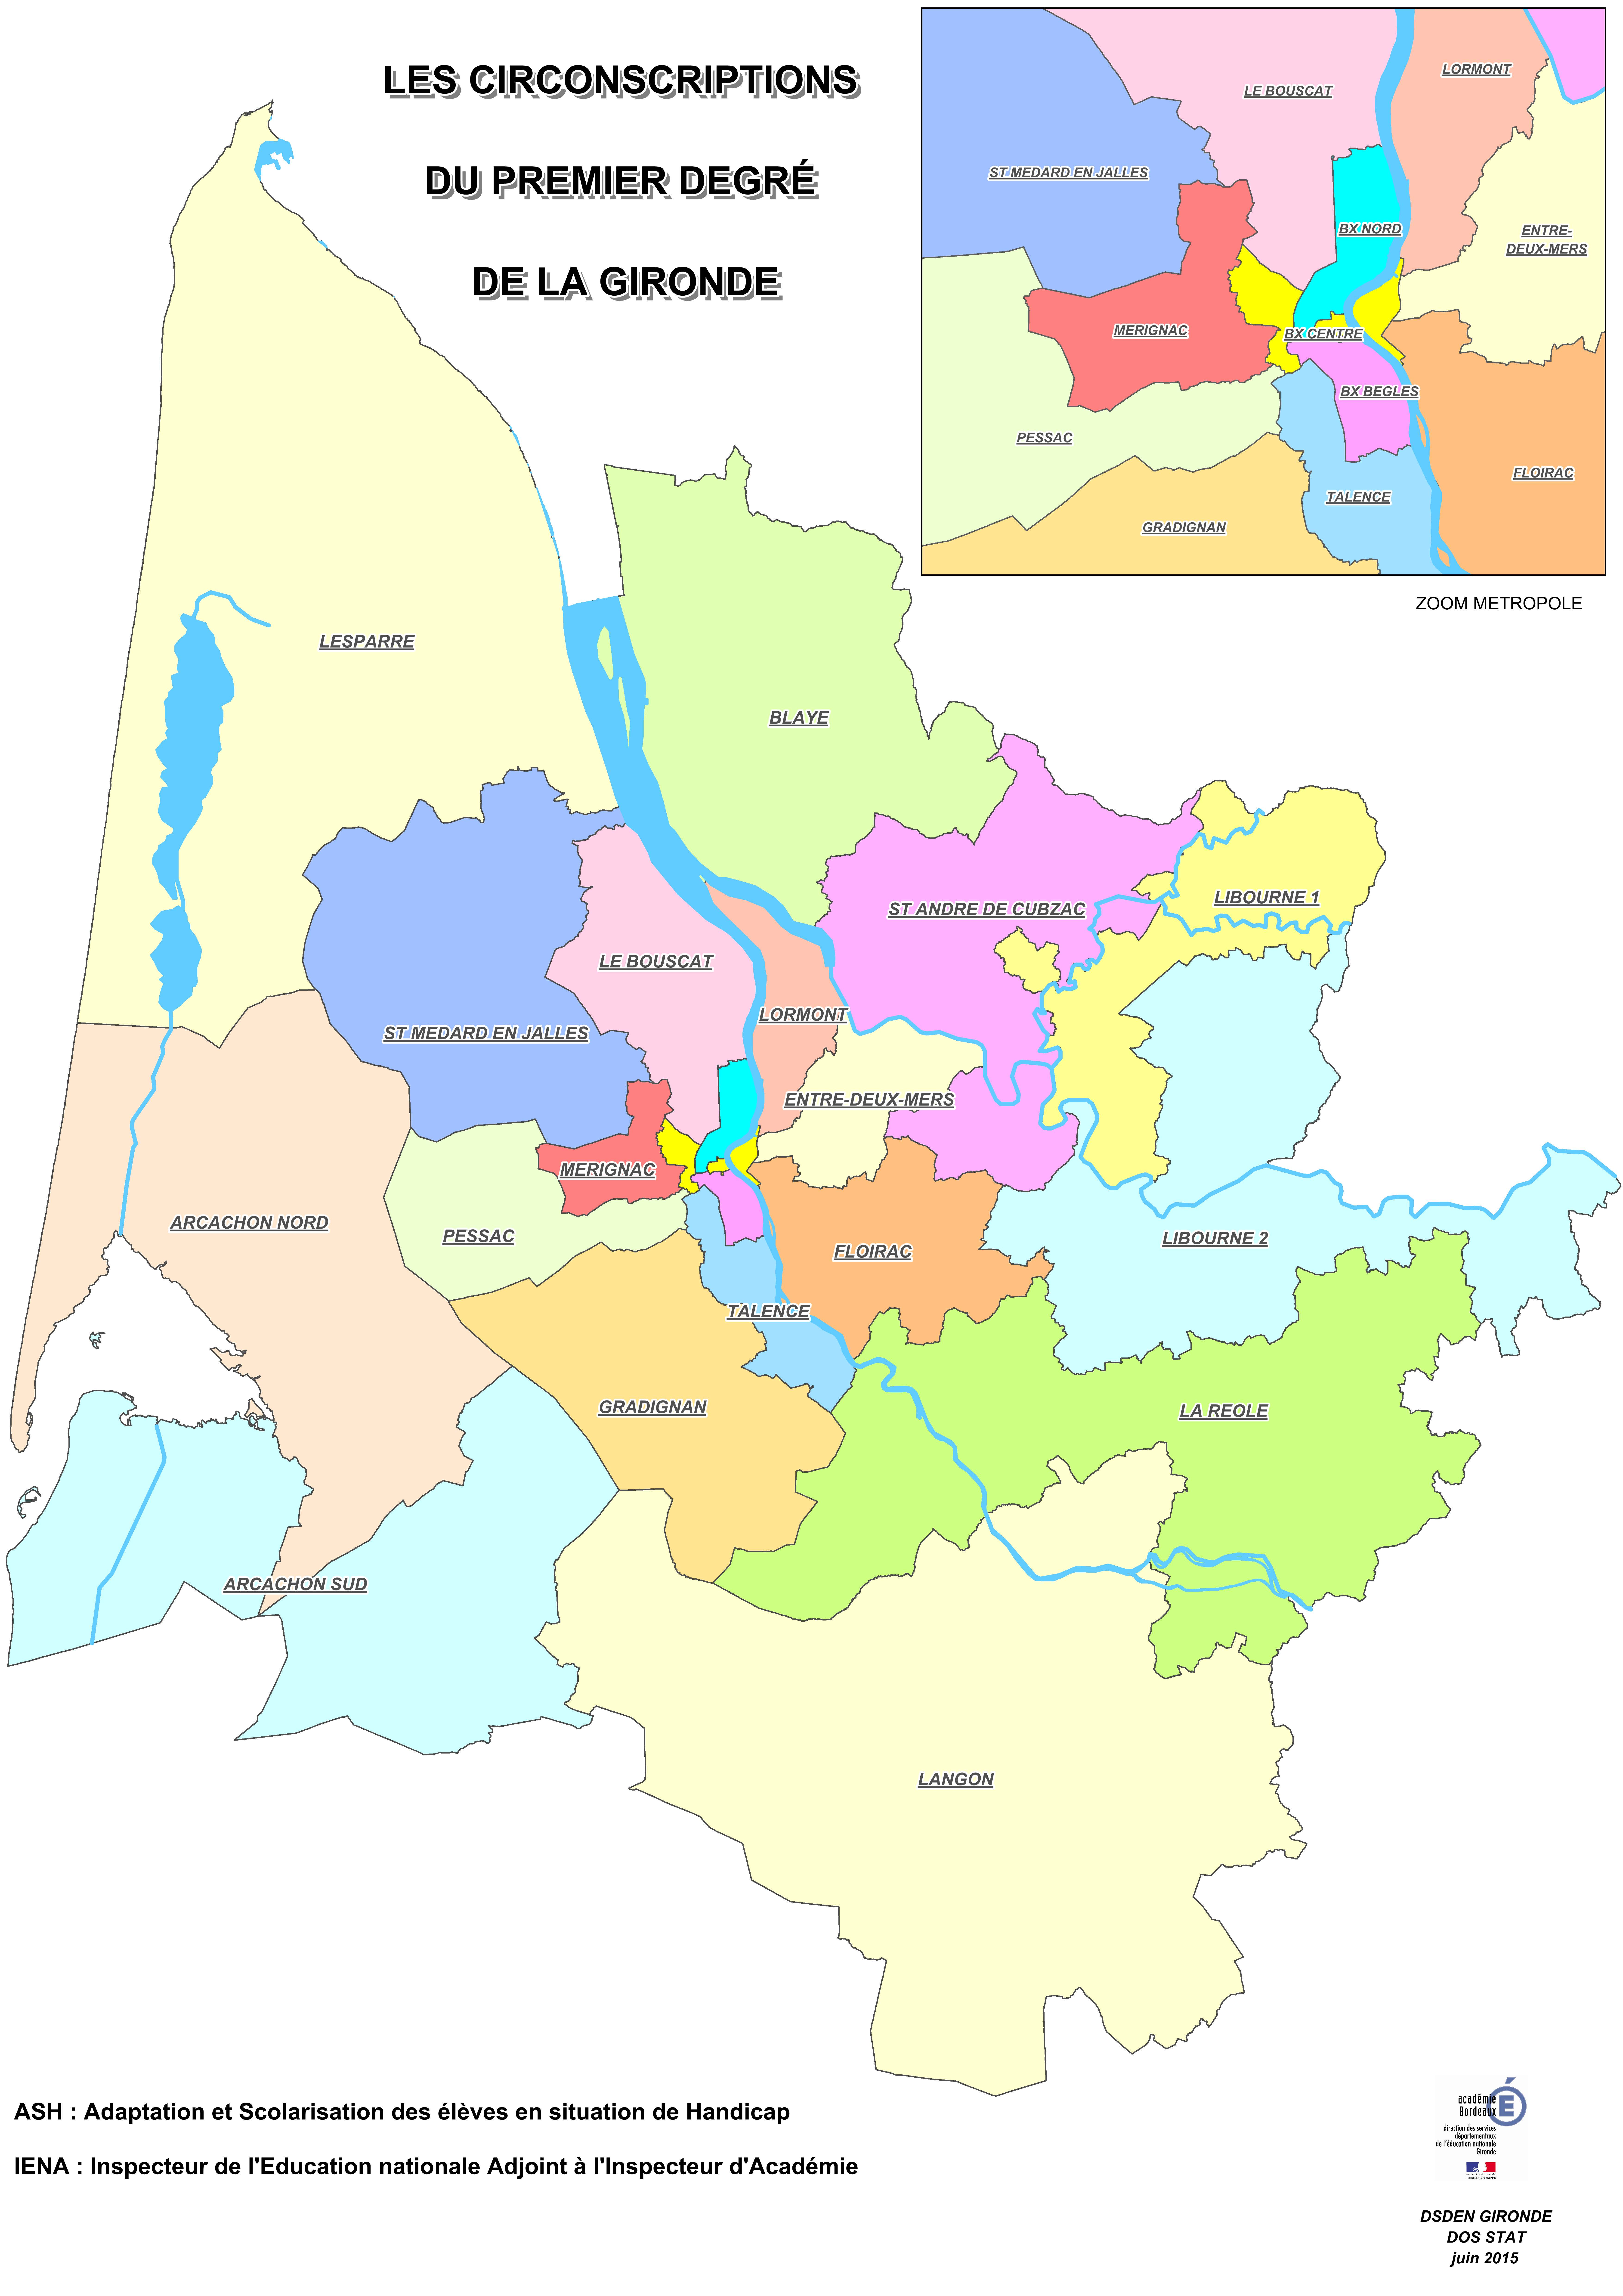 Carte_des_circonscriptions_IEN_(sans_communes-simplifiee)_R2015_451103